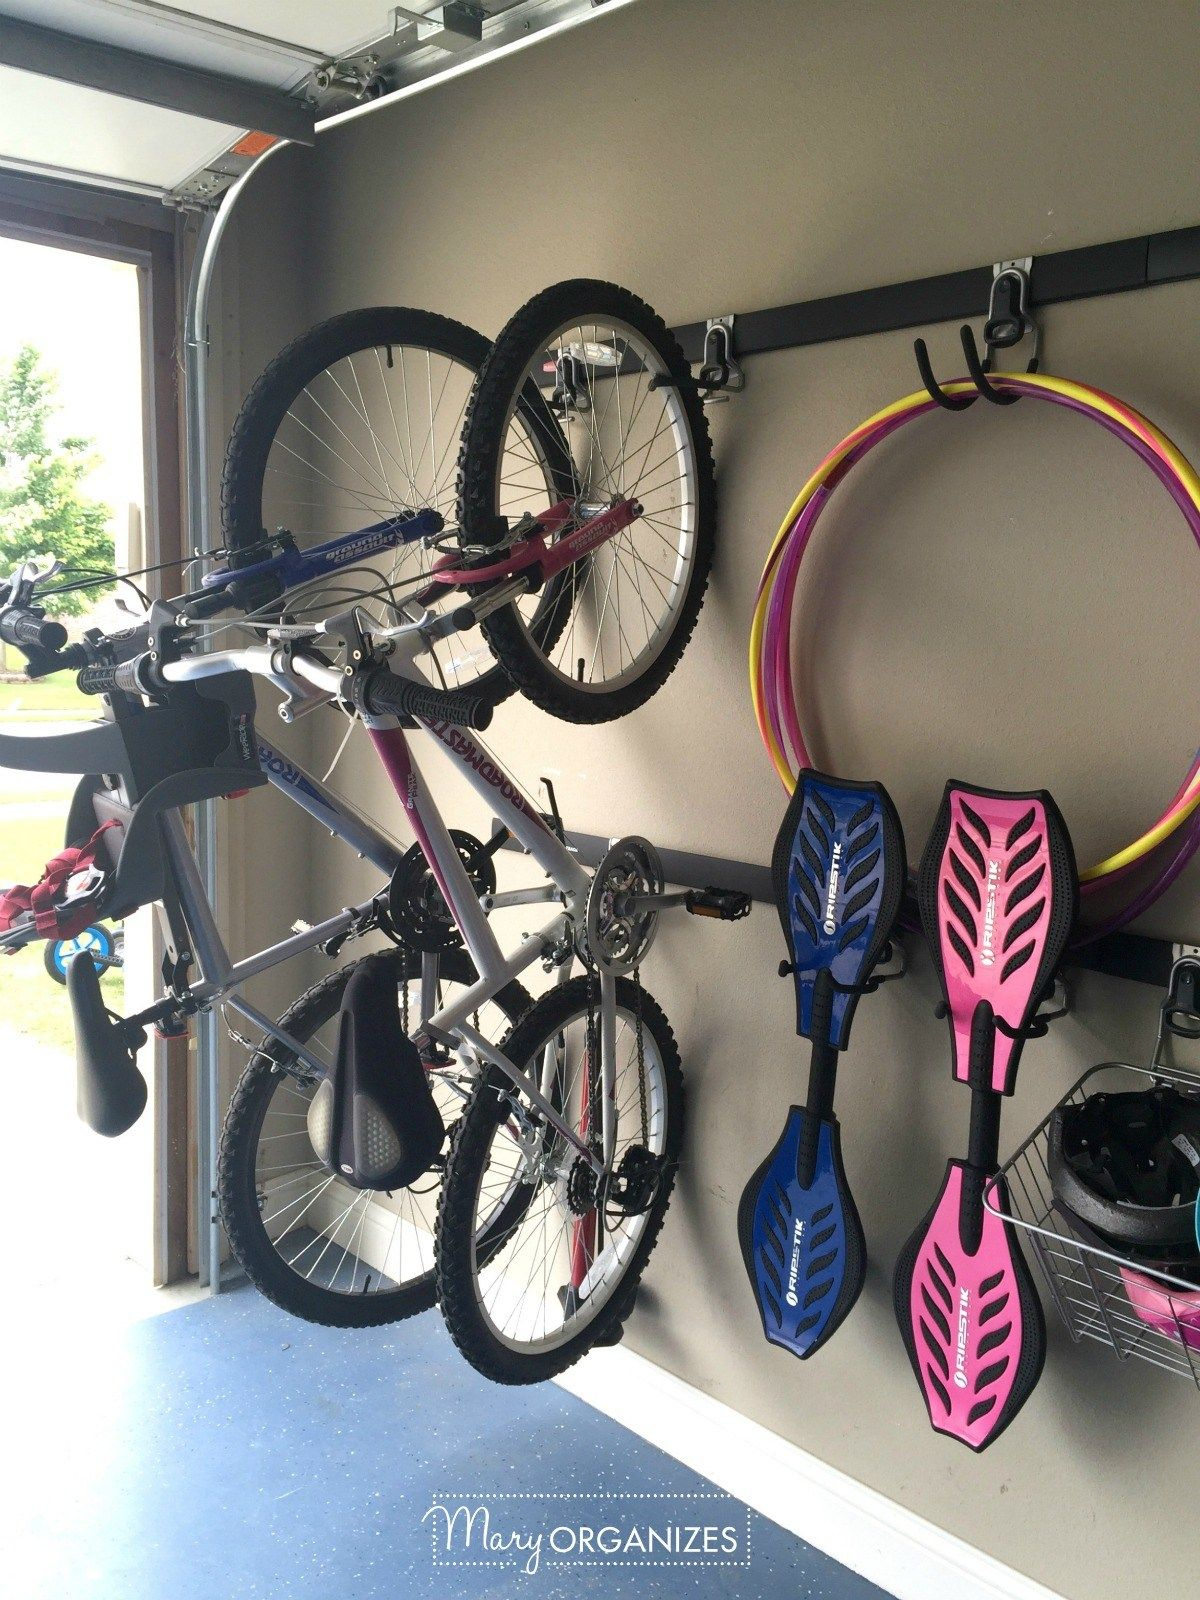 on next in bicycle bikes mounted smsender garage space two small wall hanging tulum ideas storage co pretty working room hang hooks to design white bike freestanding living